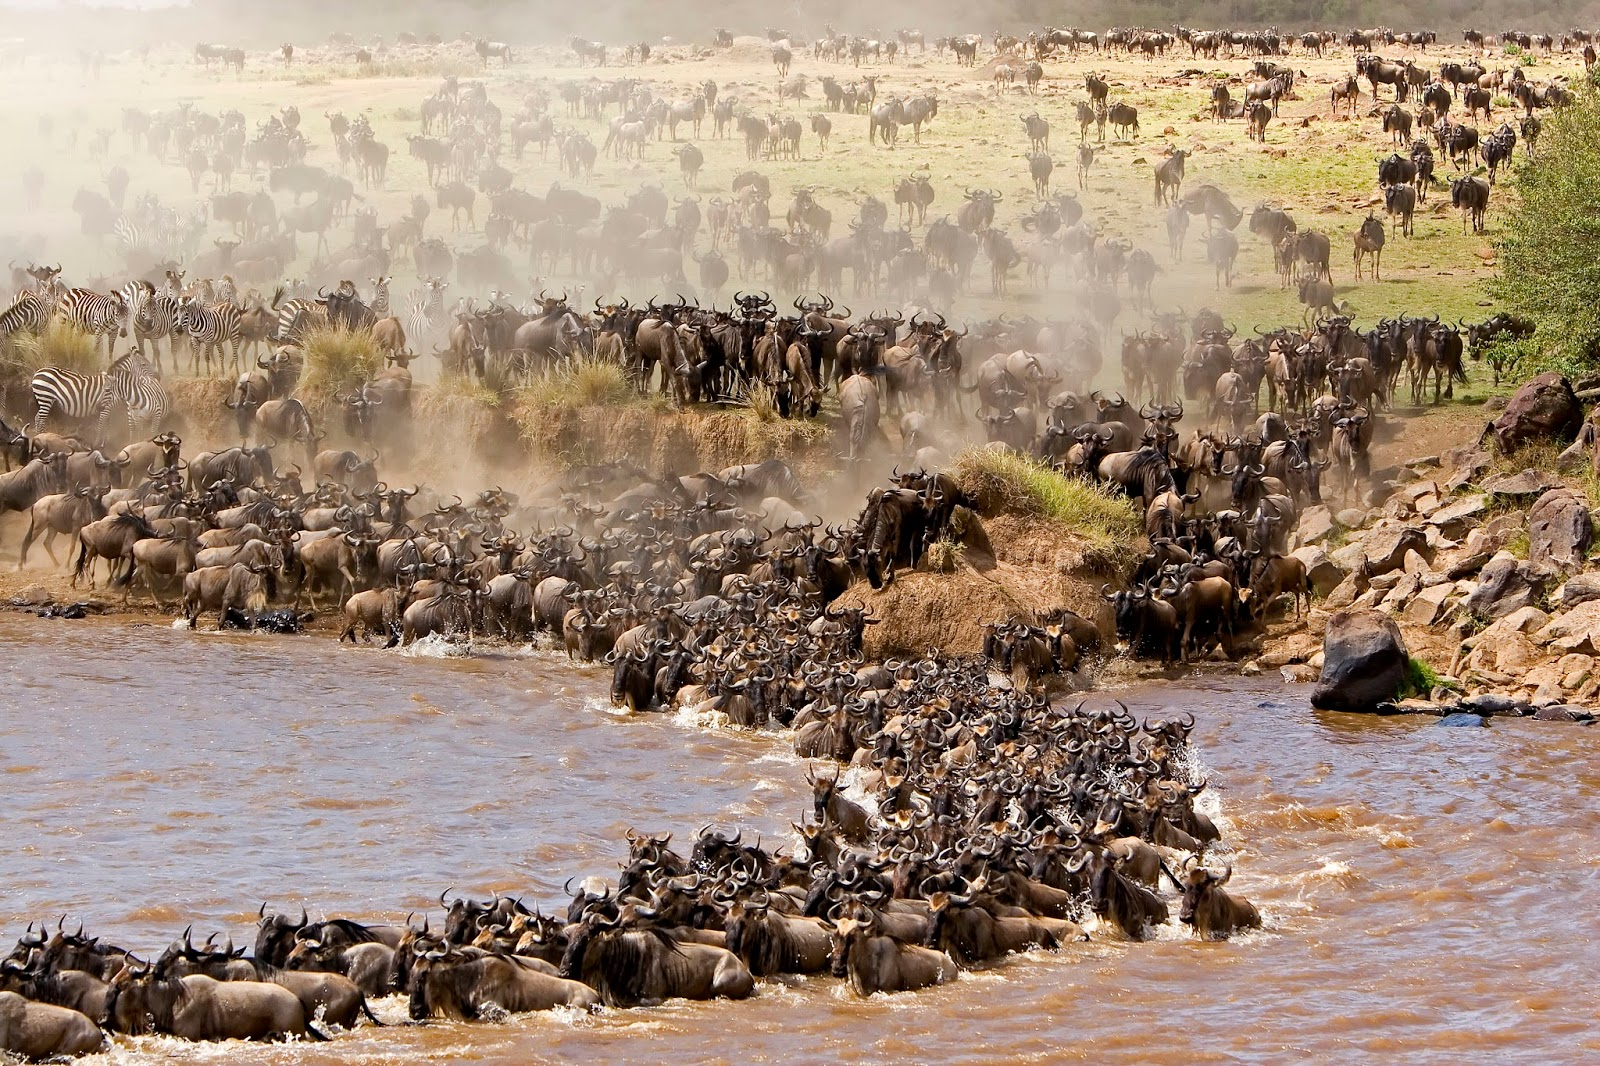 Tanzania in Style, Serengeti National Park, Wildebeest migration